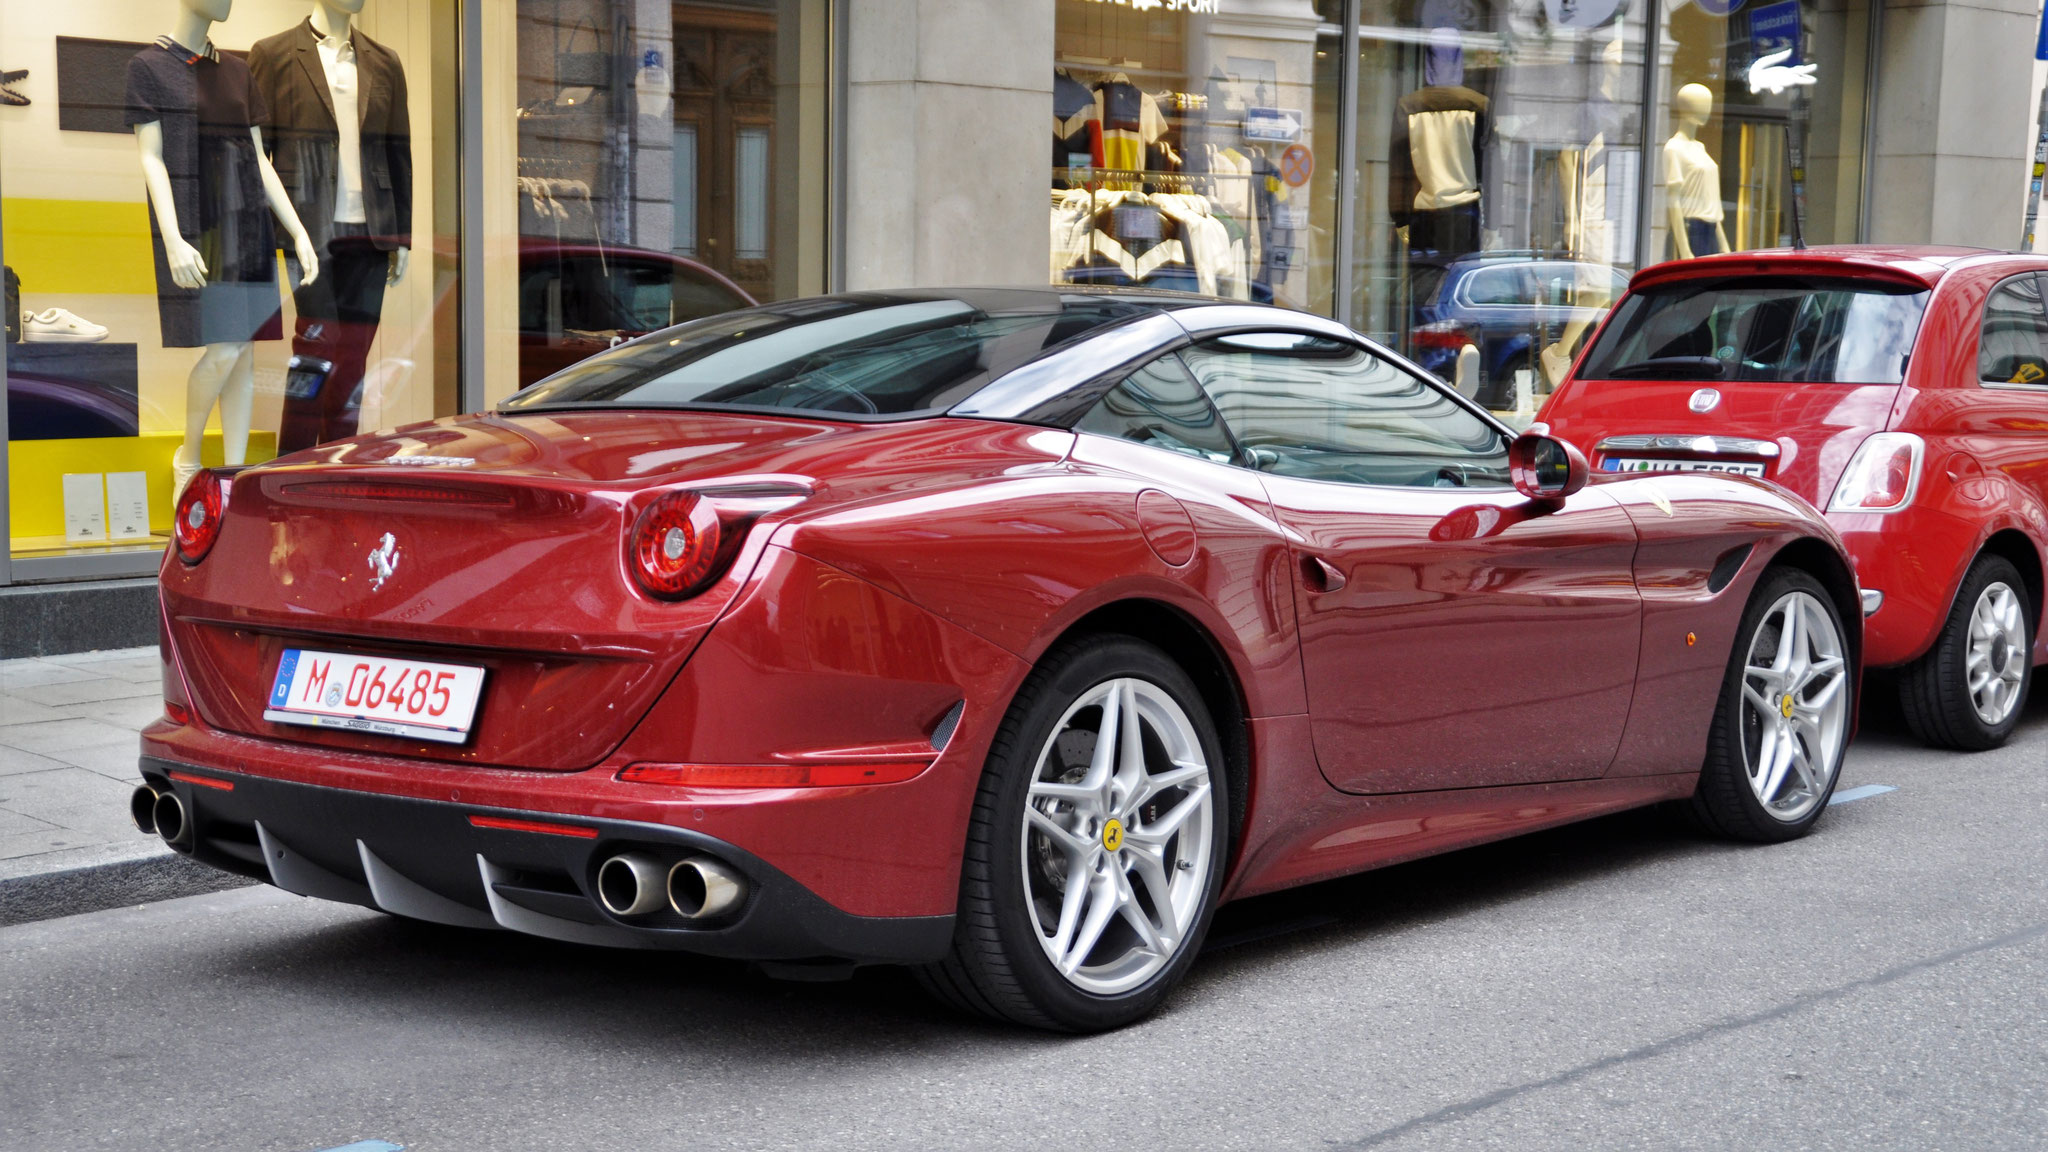 Ferrari California T - M-06485